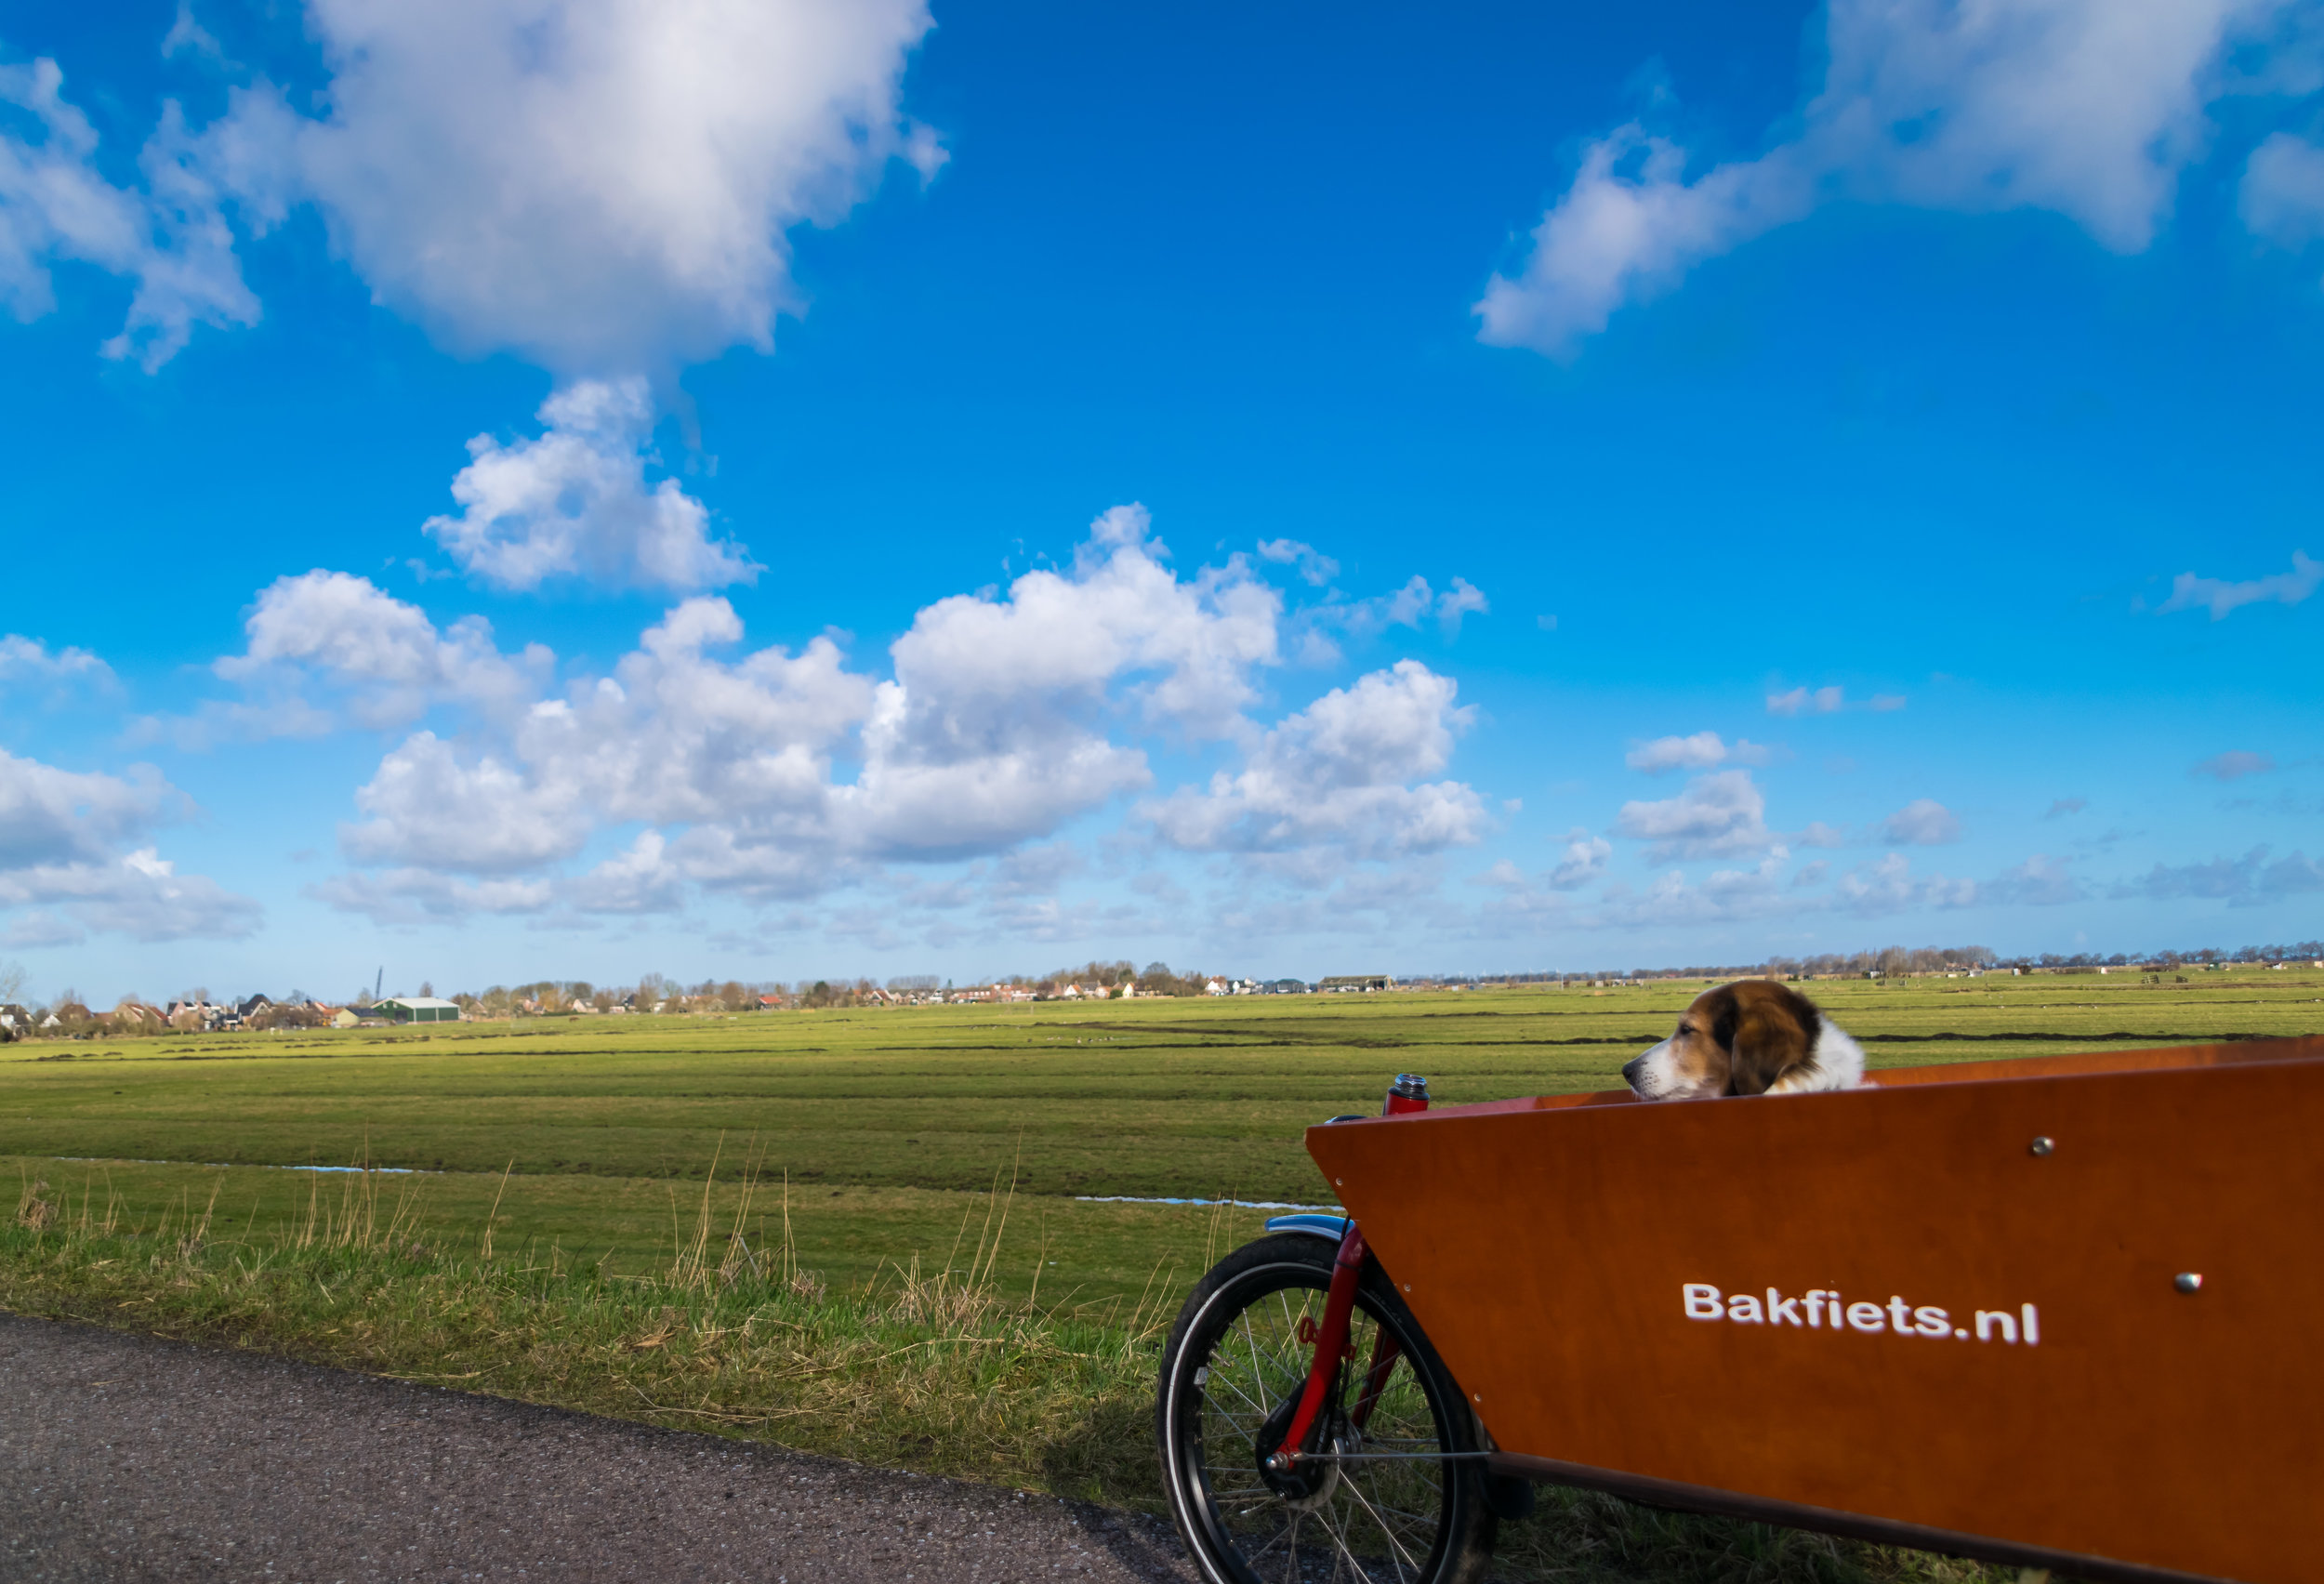 Netherlands_bike+ride-2.jpg